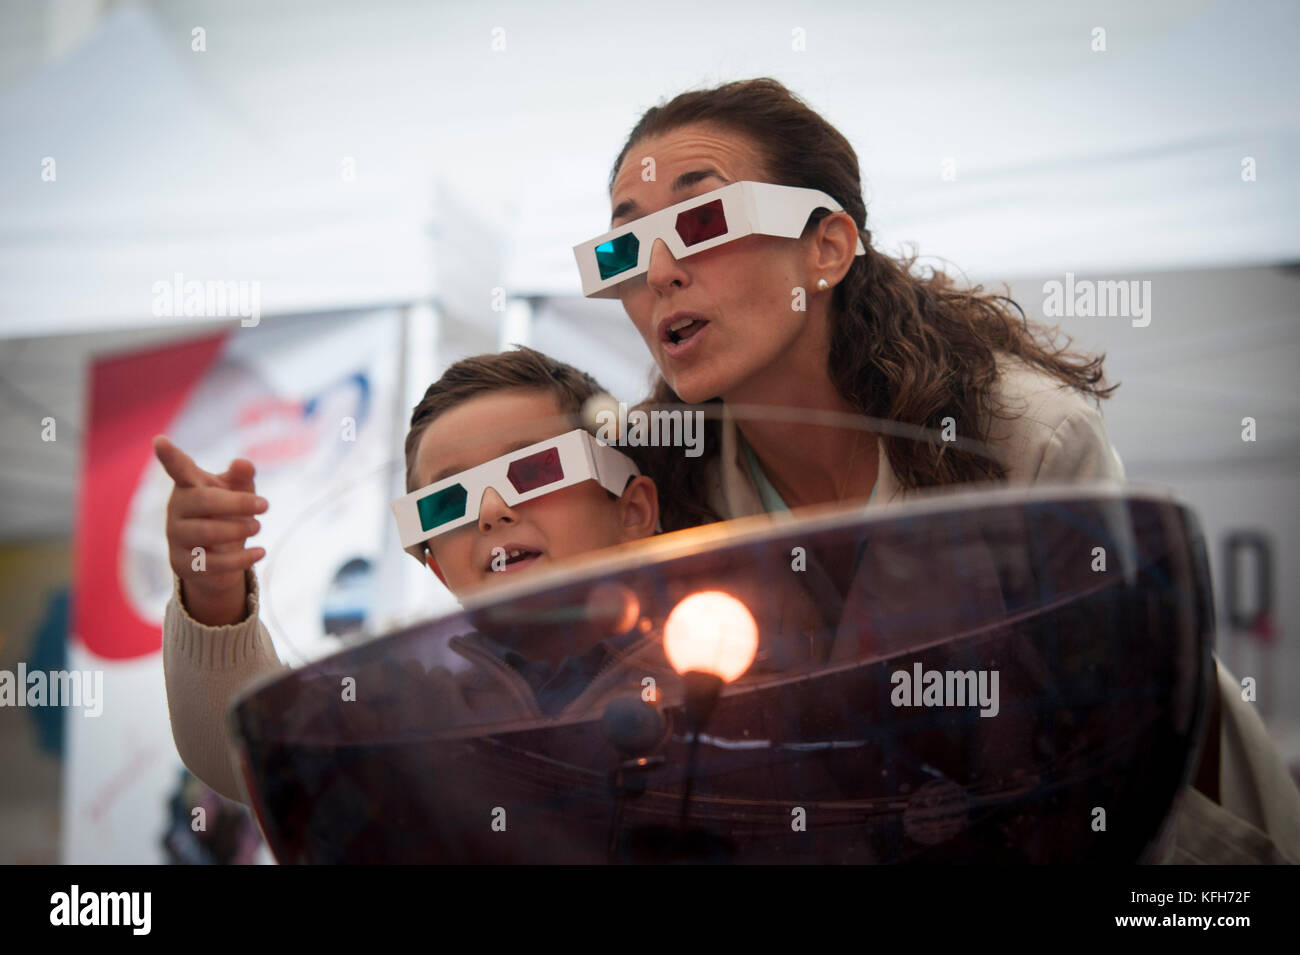 Some people with 3-dimensional glasses - Stock Image